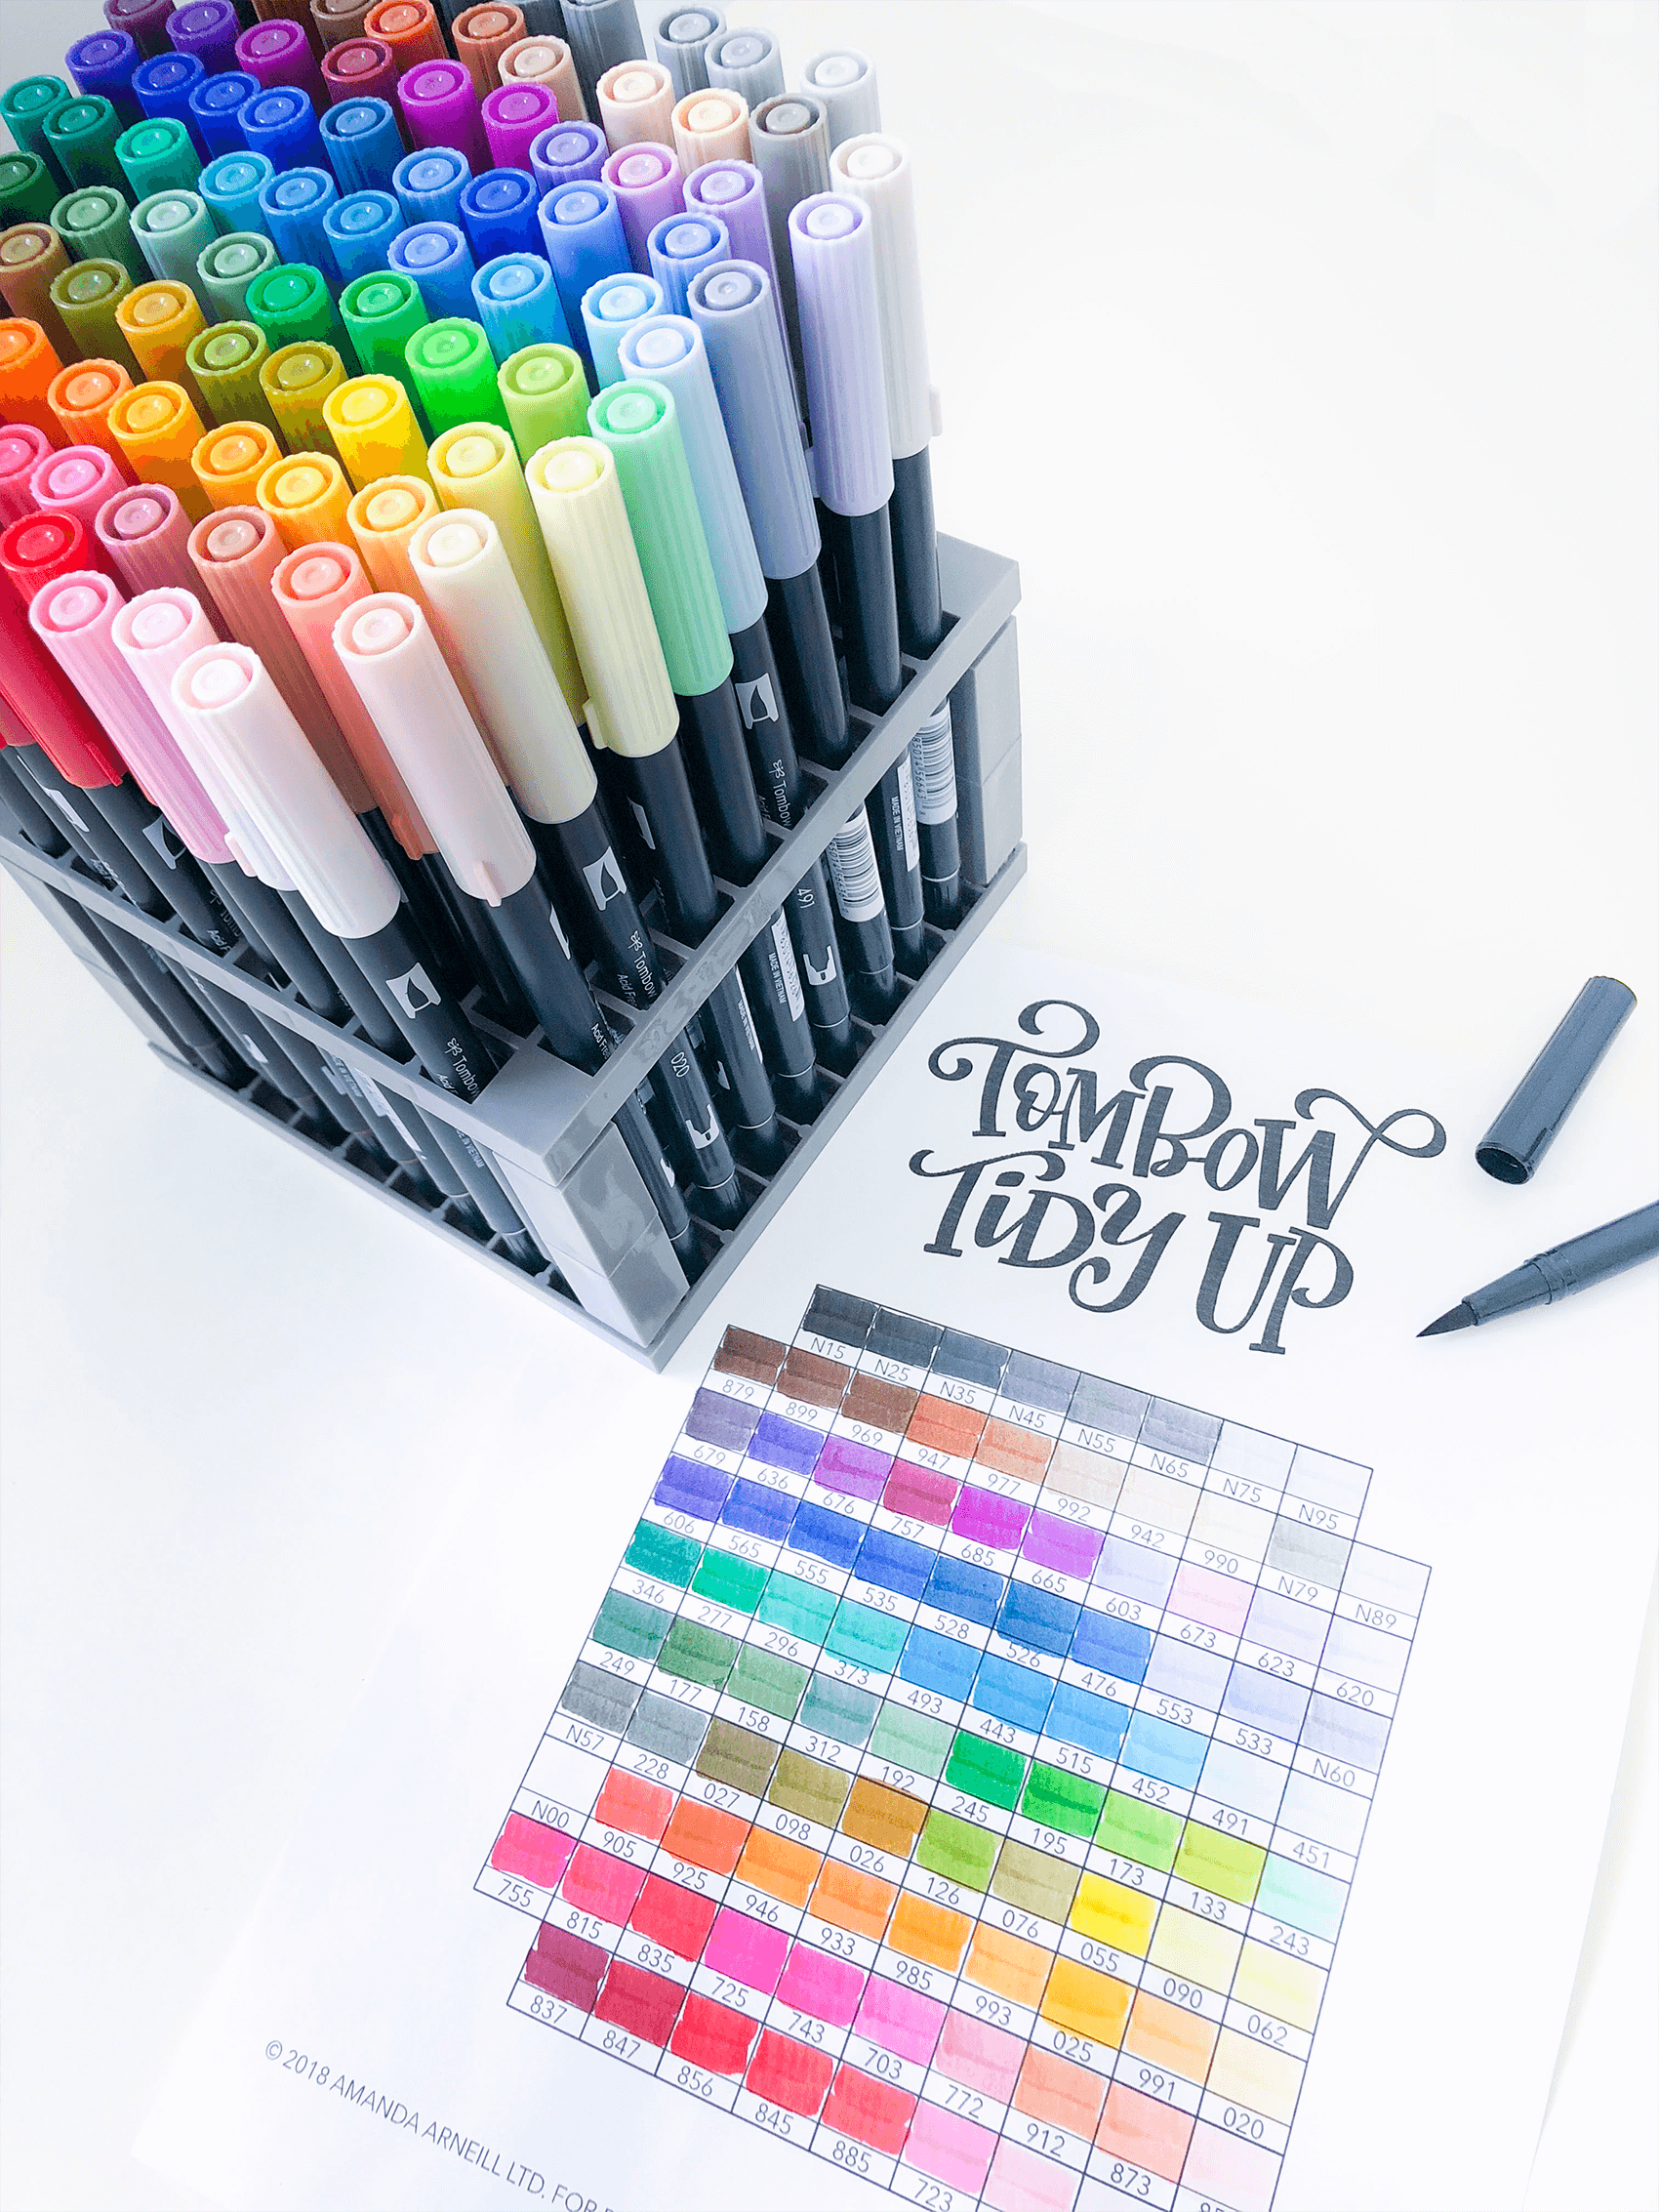 graphic relating to Free Printable Color Chart referred to as Tombow Tidy-Up: Printable Tombow Twin Brush Pen Organizer